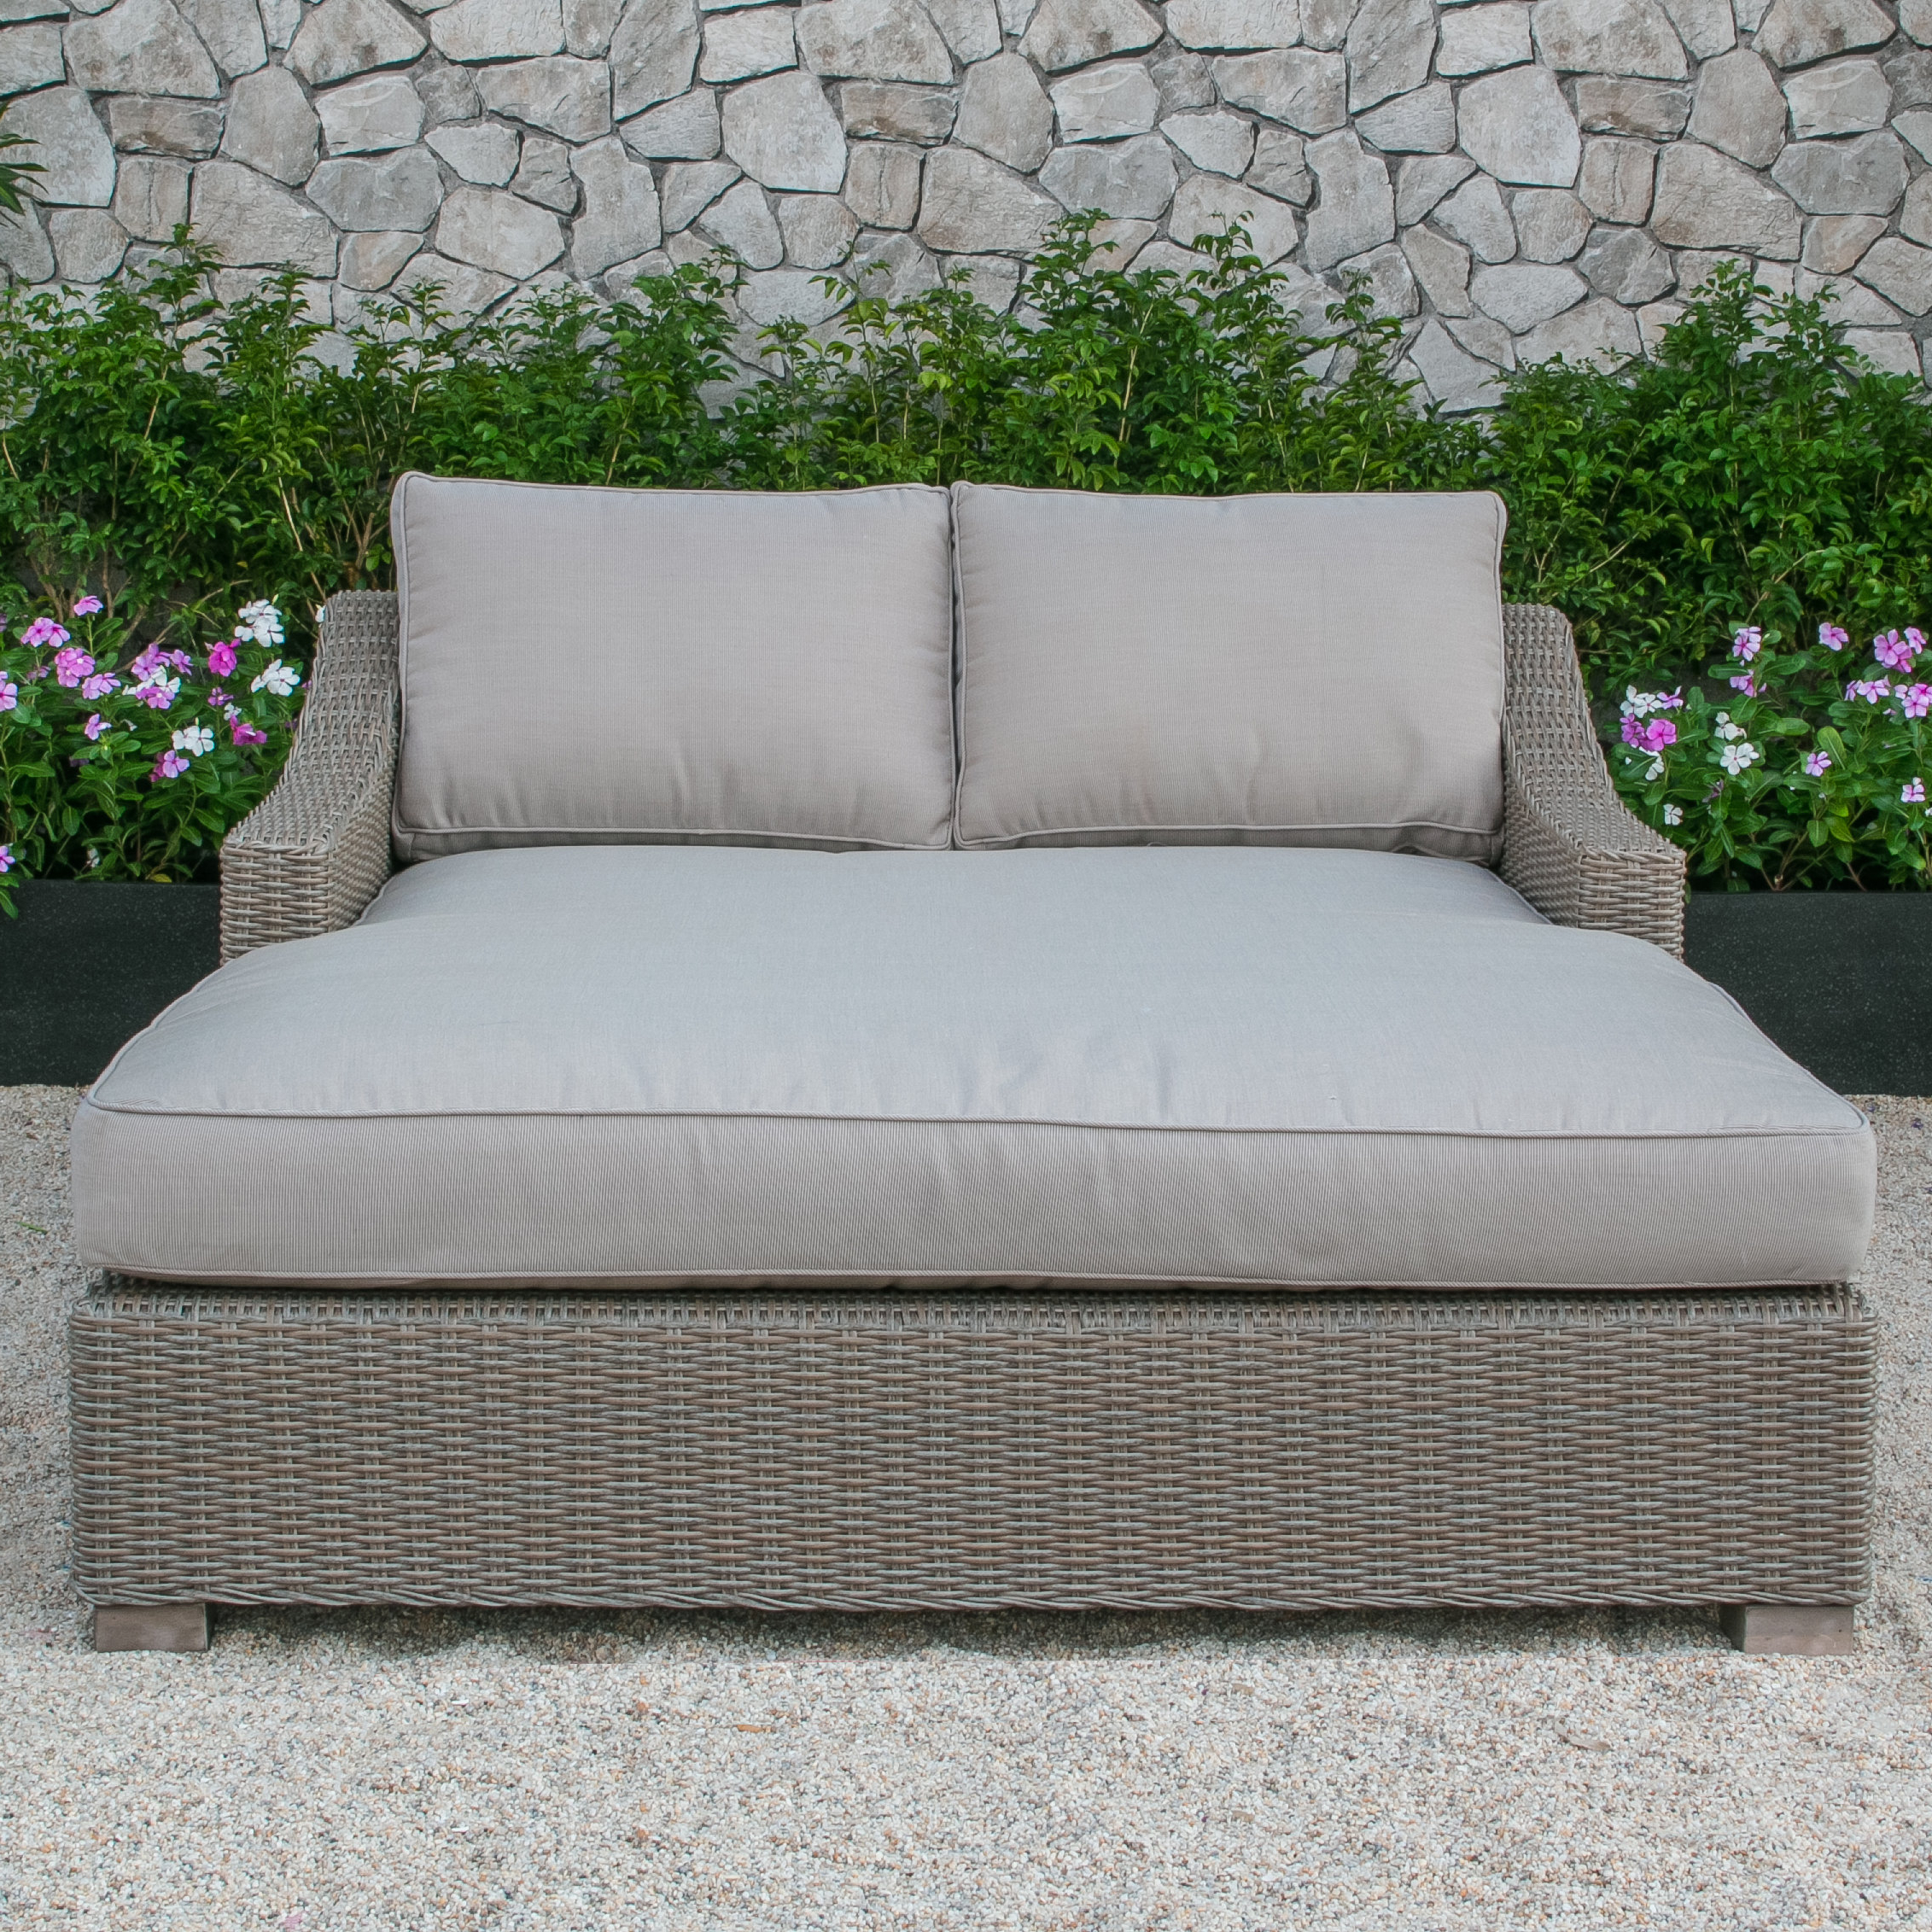 Trendy Naperville Patio Daybed With Cushion Regarding Tiana Patio Daybeds With Cushions (View 20 of 20)